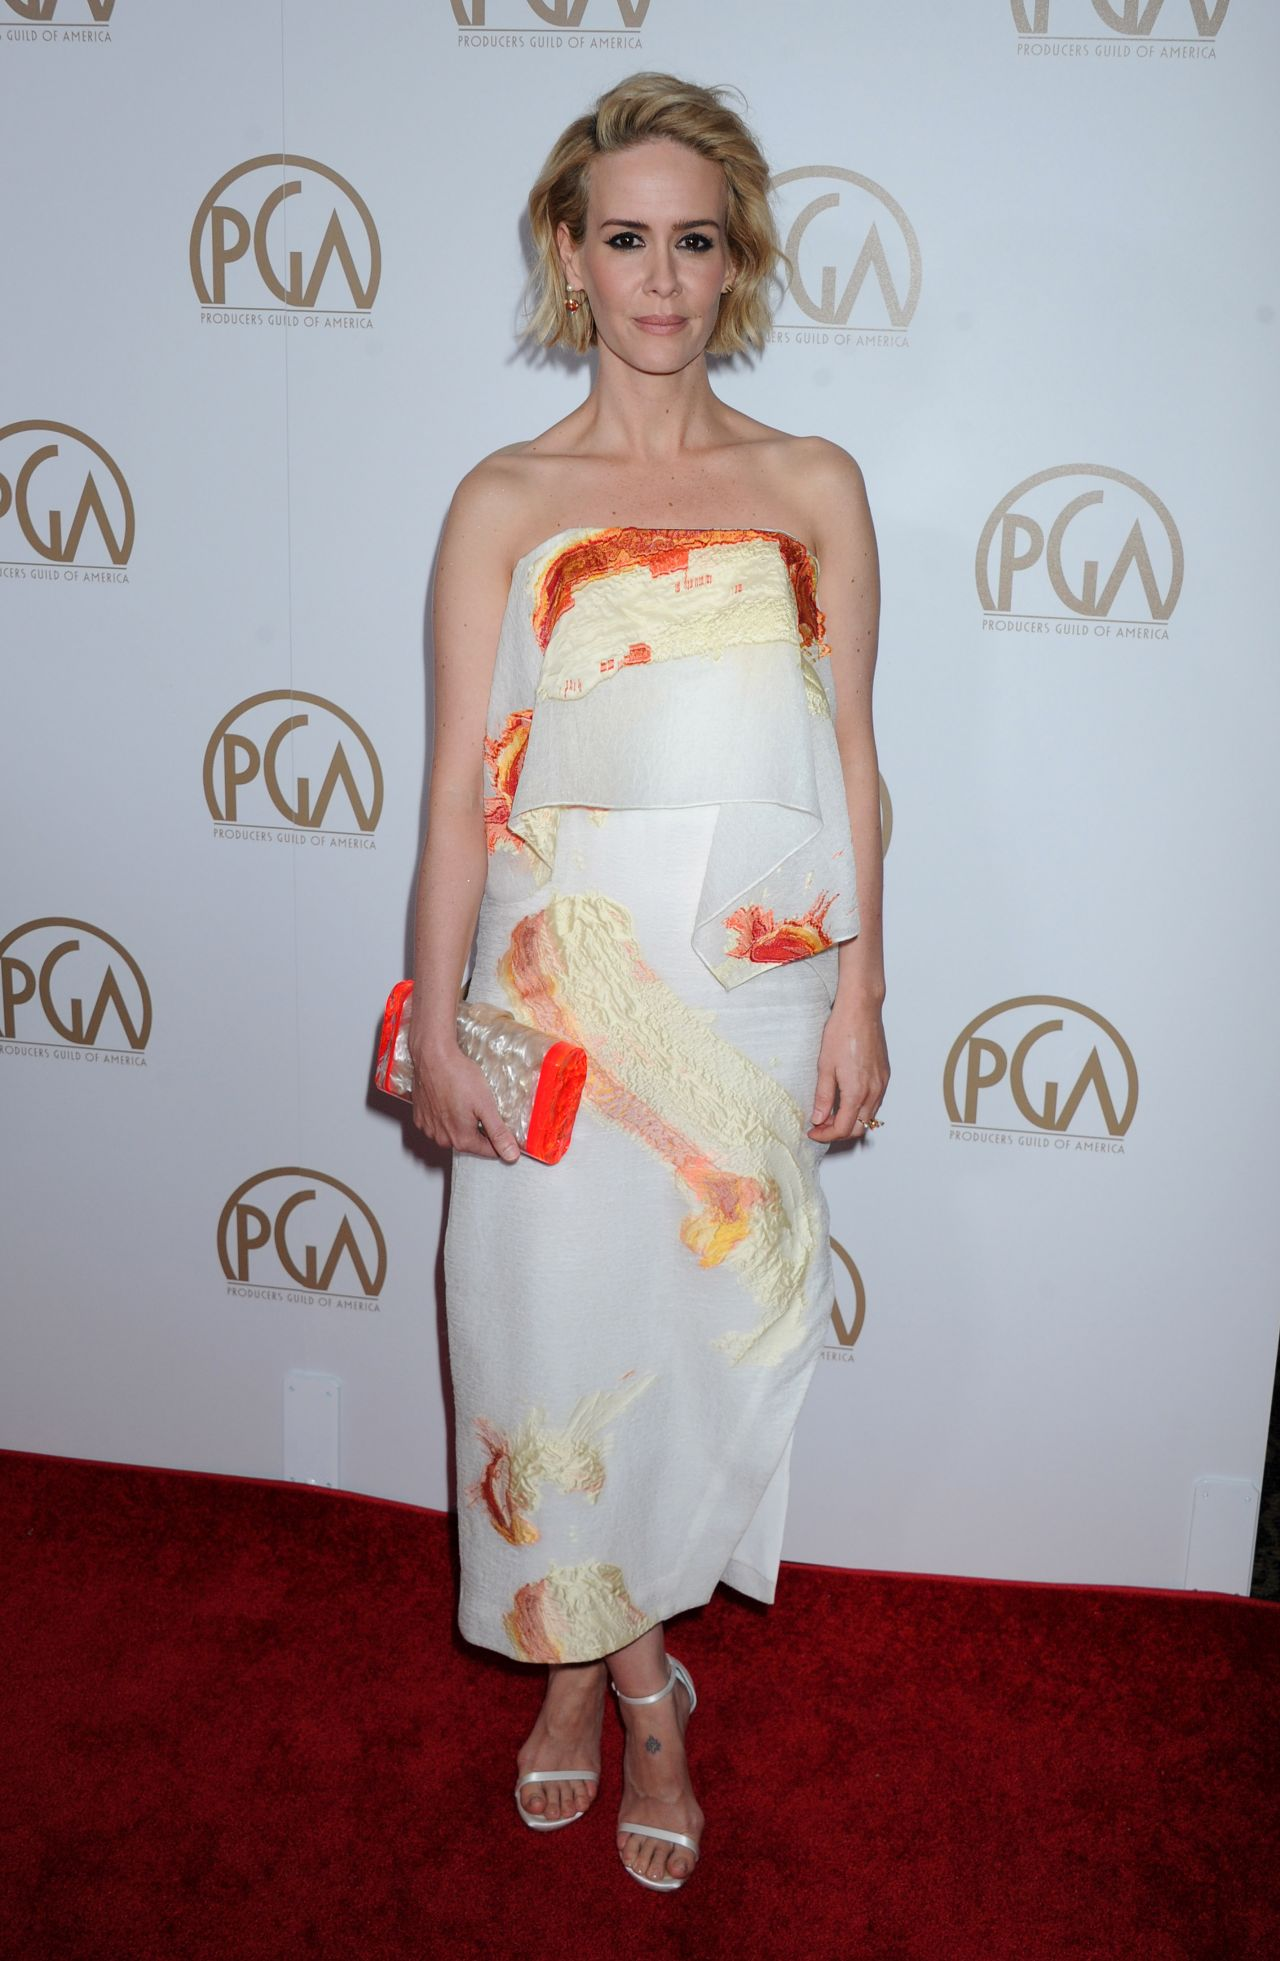 sarah-paulson-2016-producers-guild-awards-in-los-angeles-1